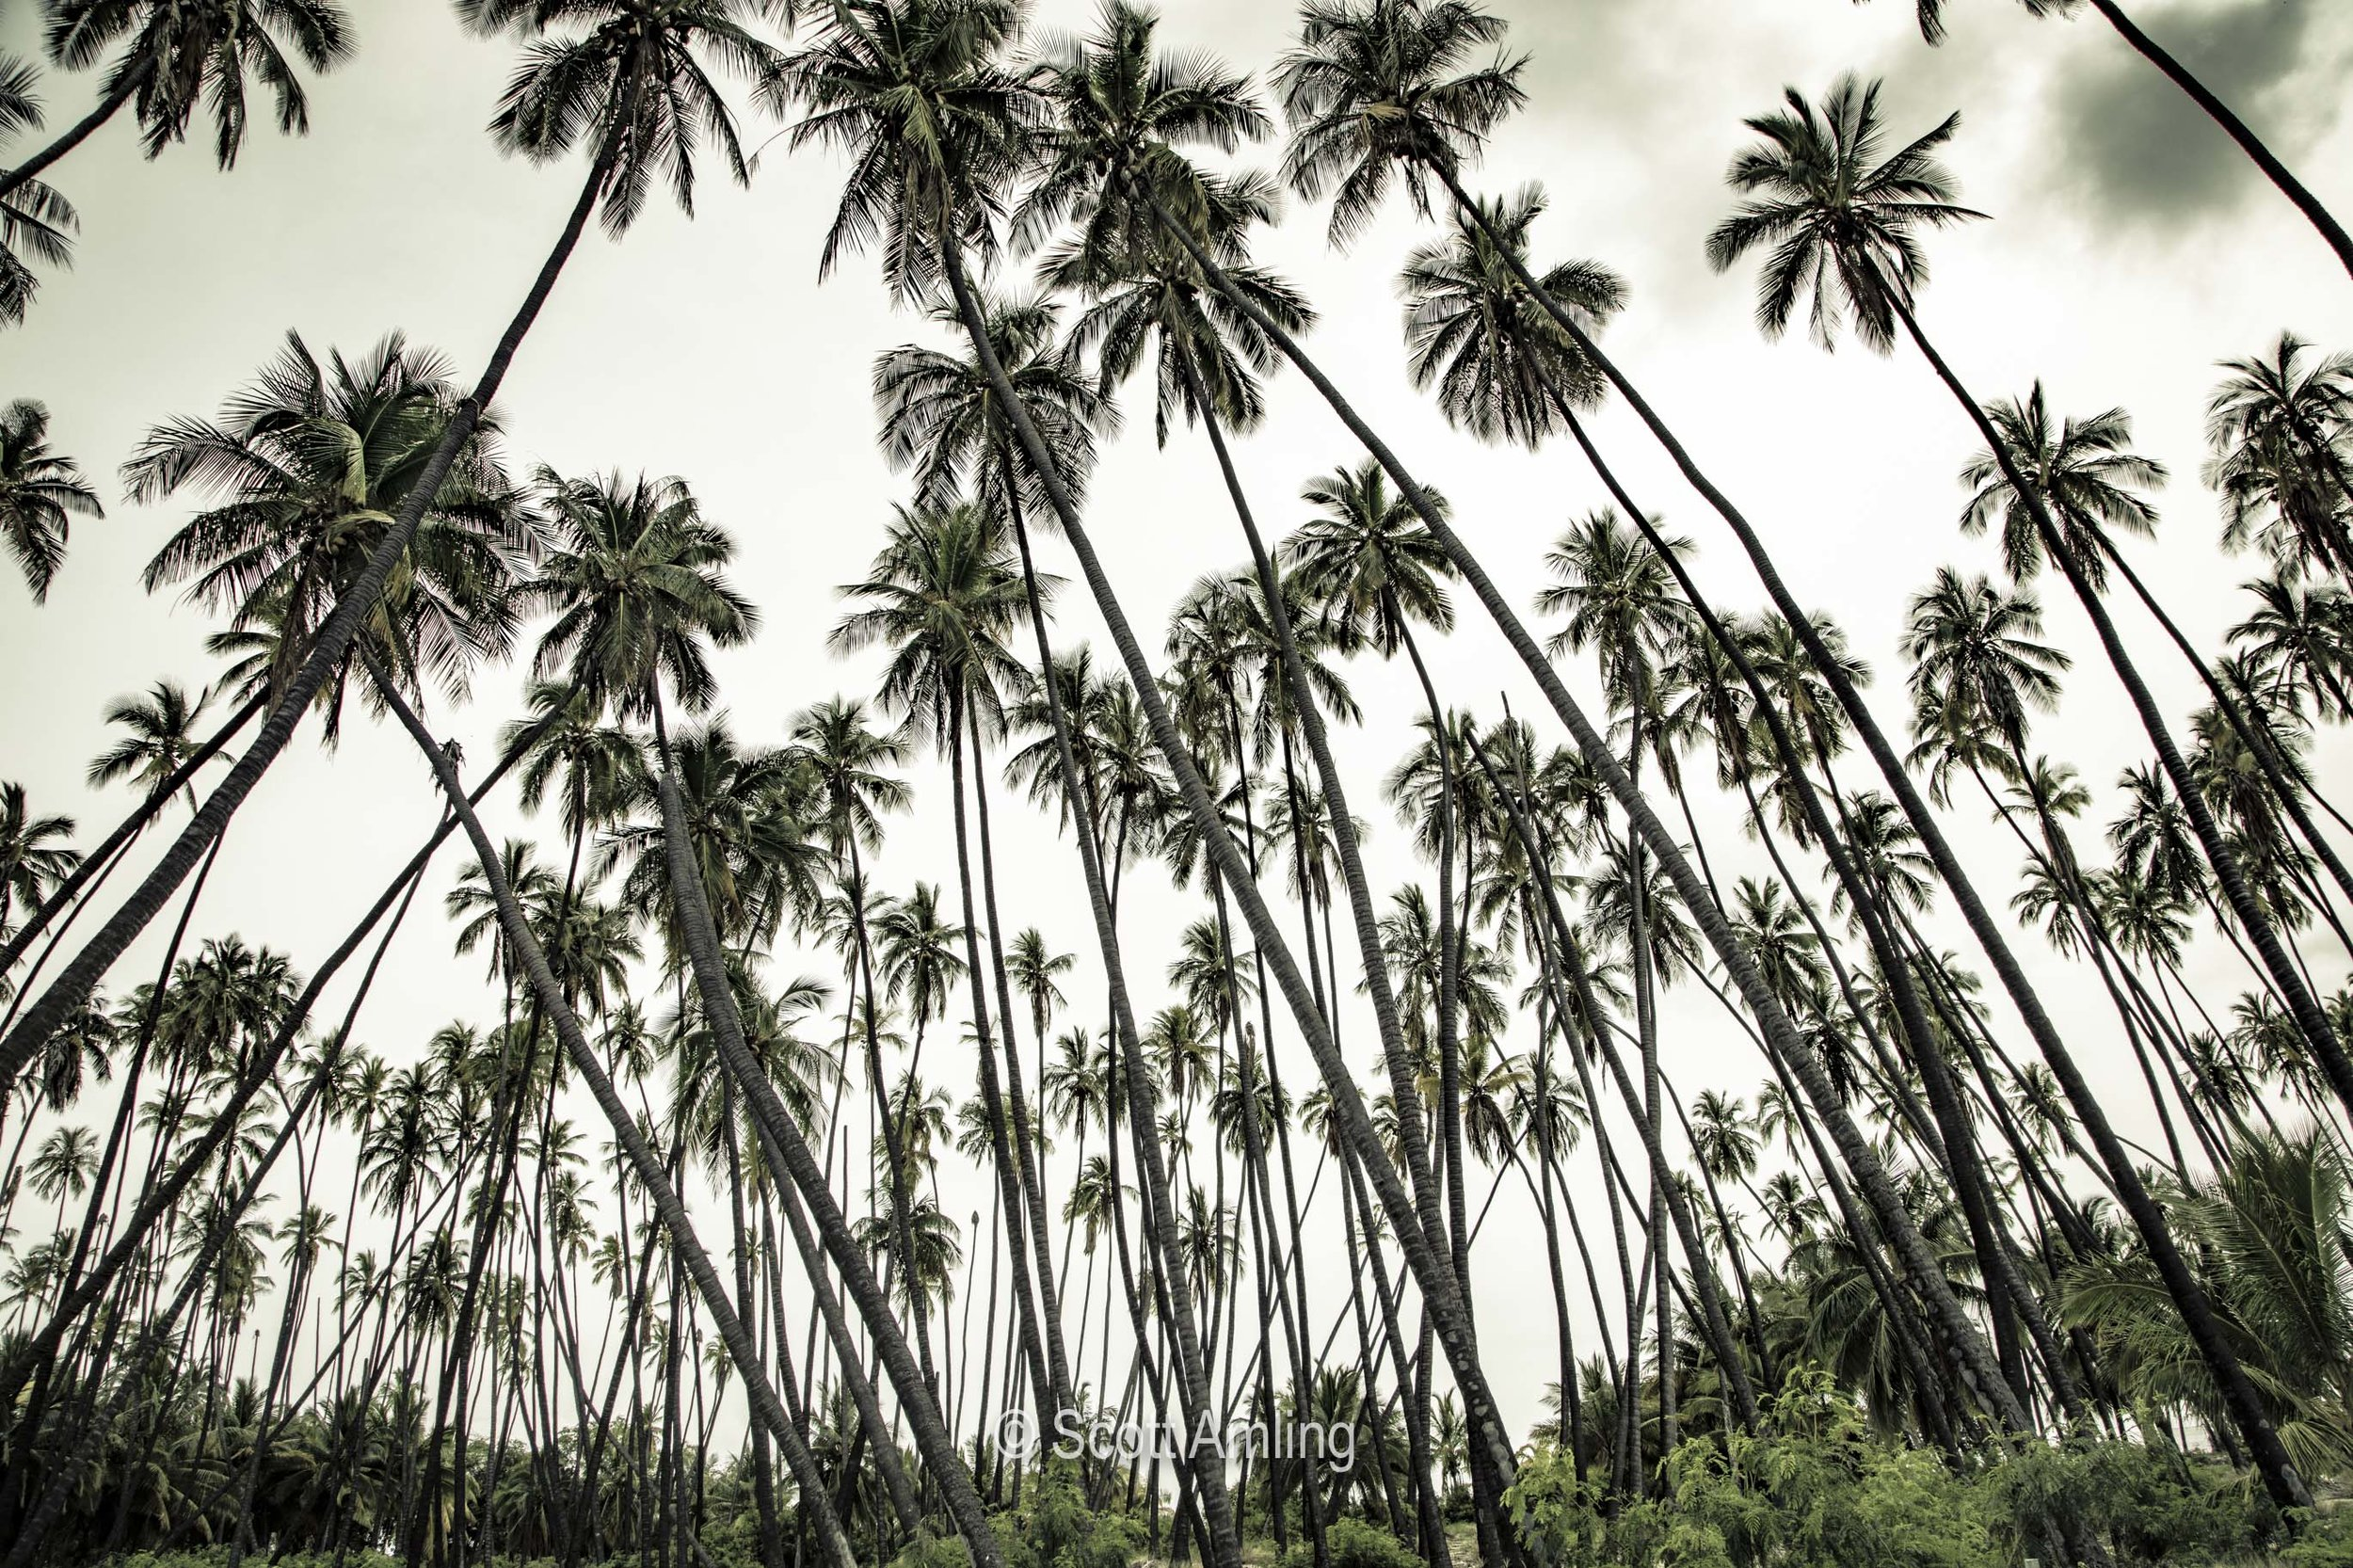 King Palm Groves